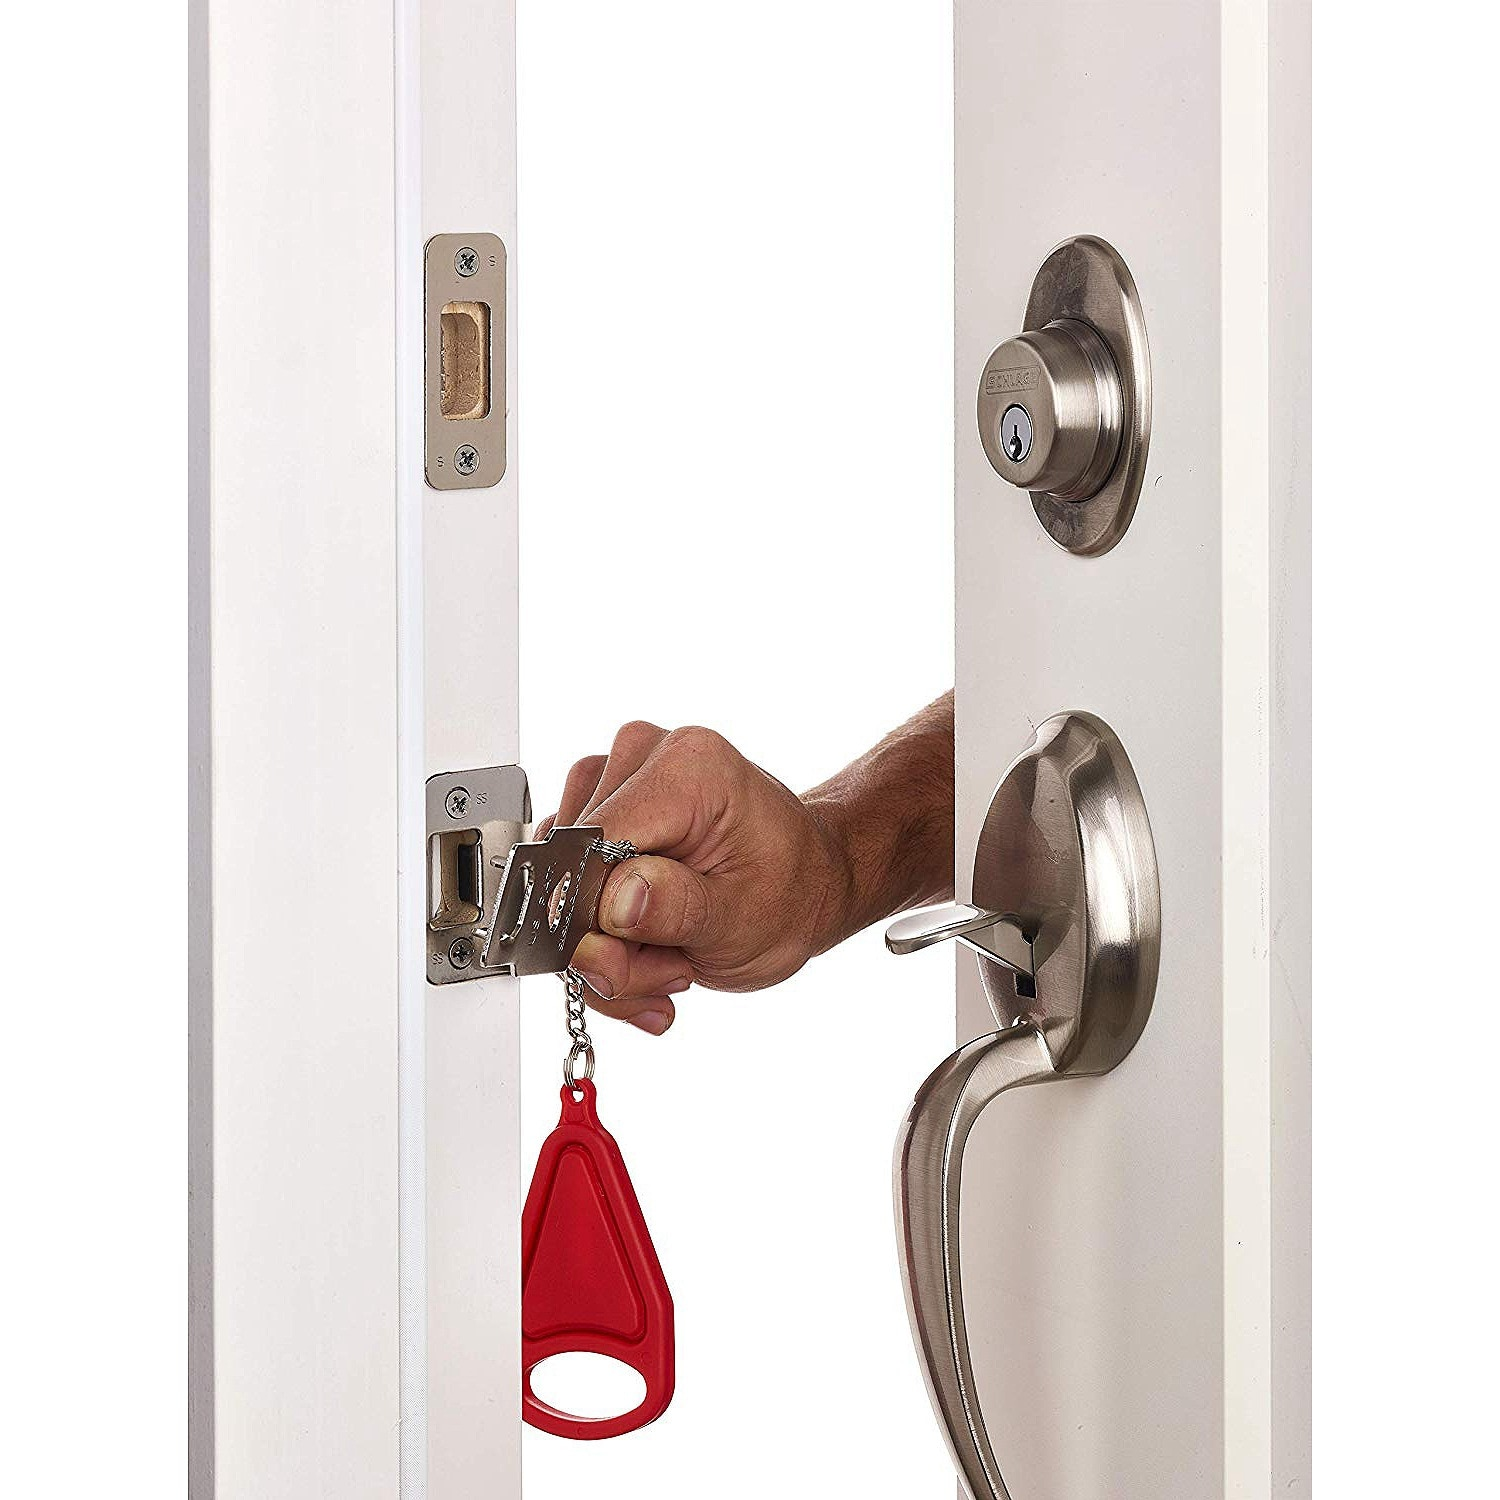 PORTABLE DOOR LOCK - ADDS AN EXTRA LAYER OF PROTECTION!